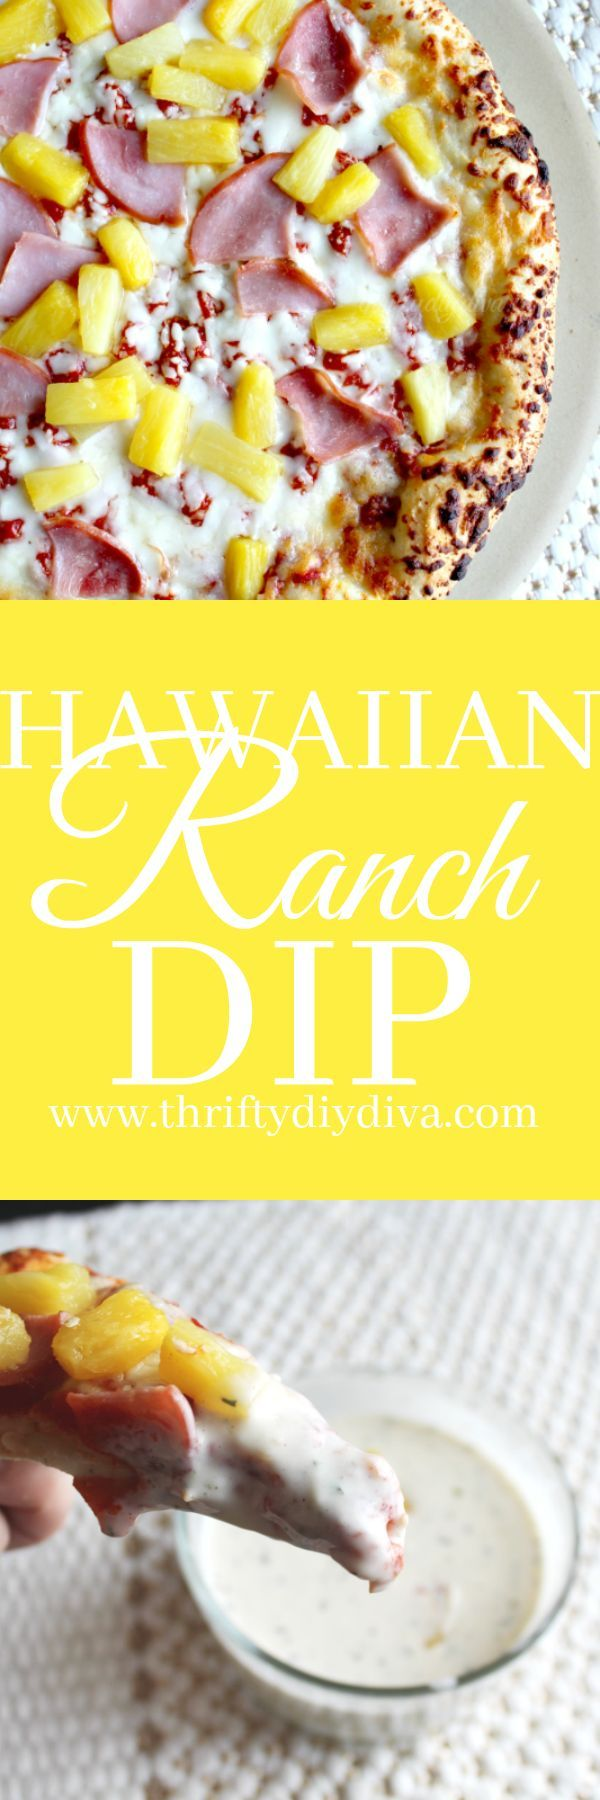 AD Homemade Pineapple Ranch Dressing (Hawaiian Dip) #FreschettaFresh /walmart/  - Pizza + dipping sauce? Yes, please! It's not just for breadsticks, folks. Whip up my delicious Pineapple Ranch Dressing Dip recipe, which pairs perfectly with Canadian bacon and pineapple pizza.